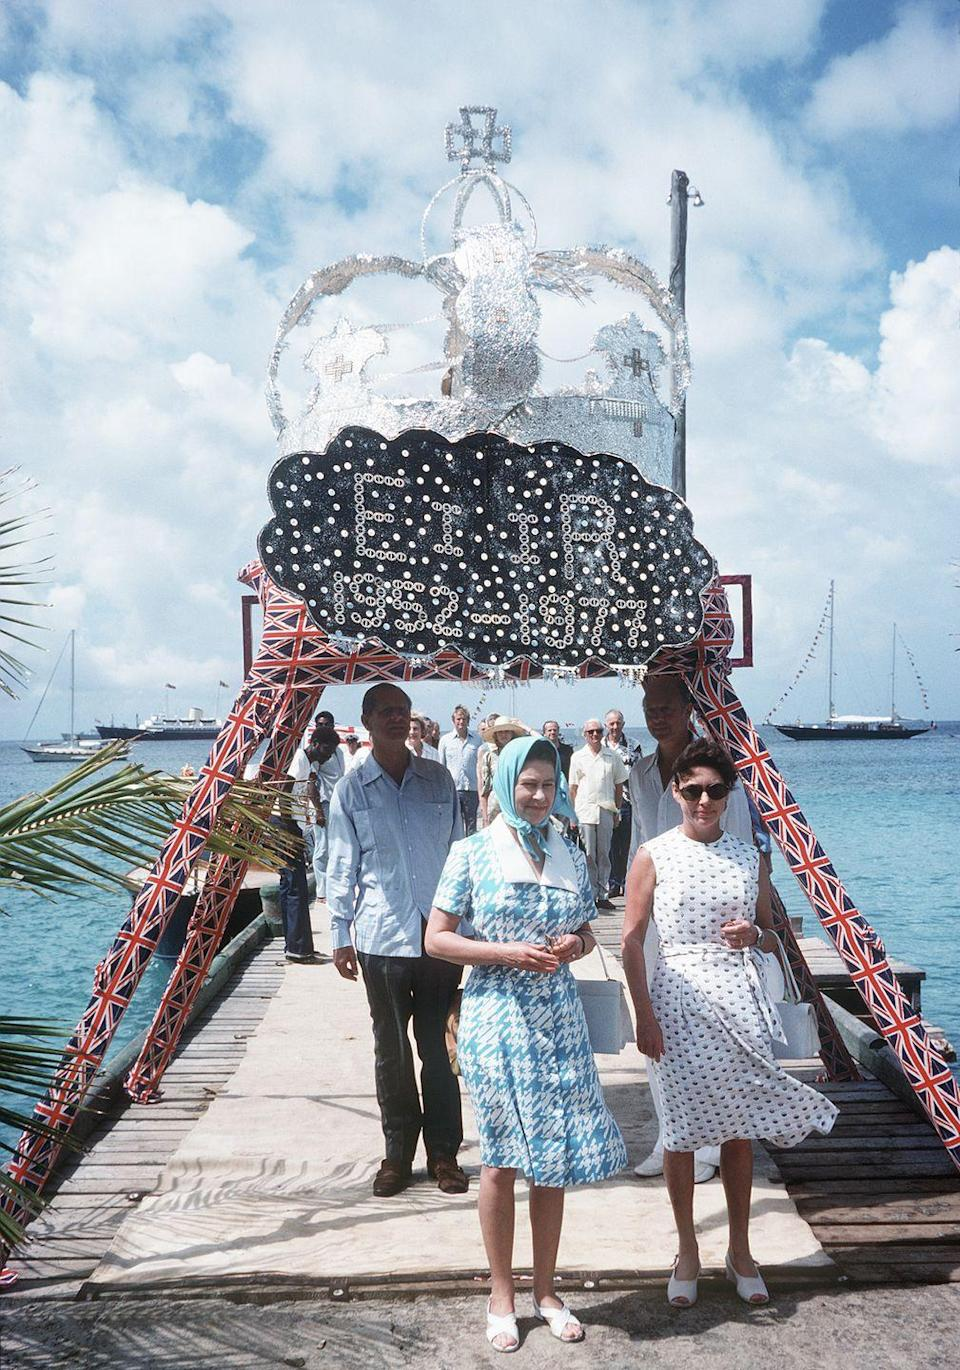 <p>Mustique was Princess Margaret's favorite vacation destination, and the Queen came to visit her there in 1977 after her Silver Jubilee Tour of the West Indies. It's now a favorite vacation spot for William and Kate. </p>